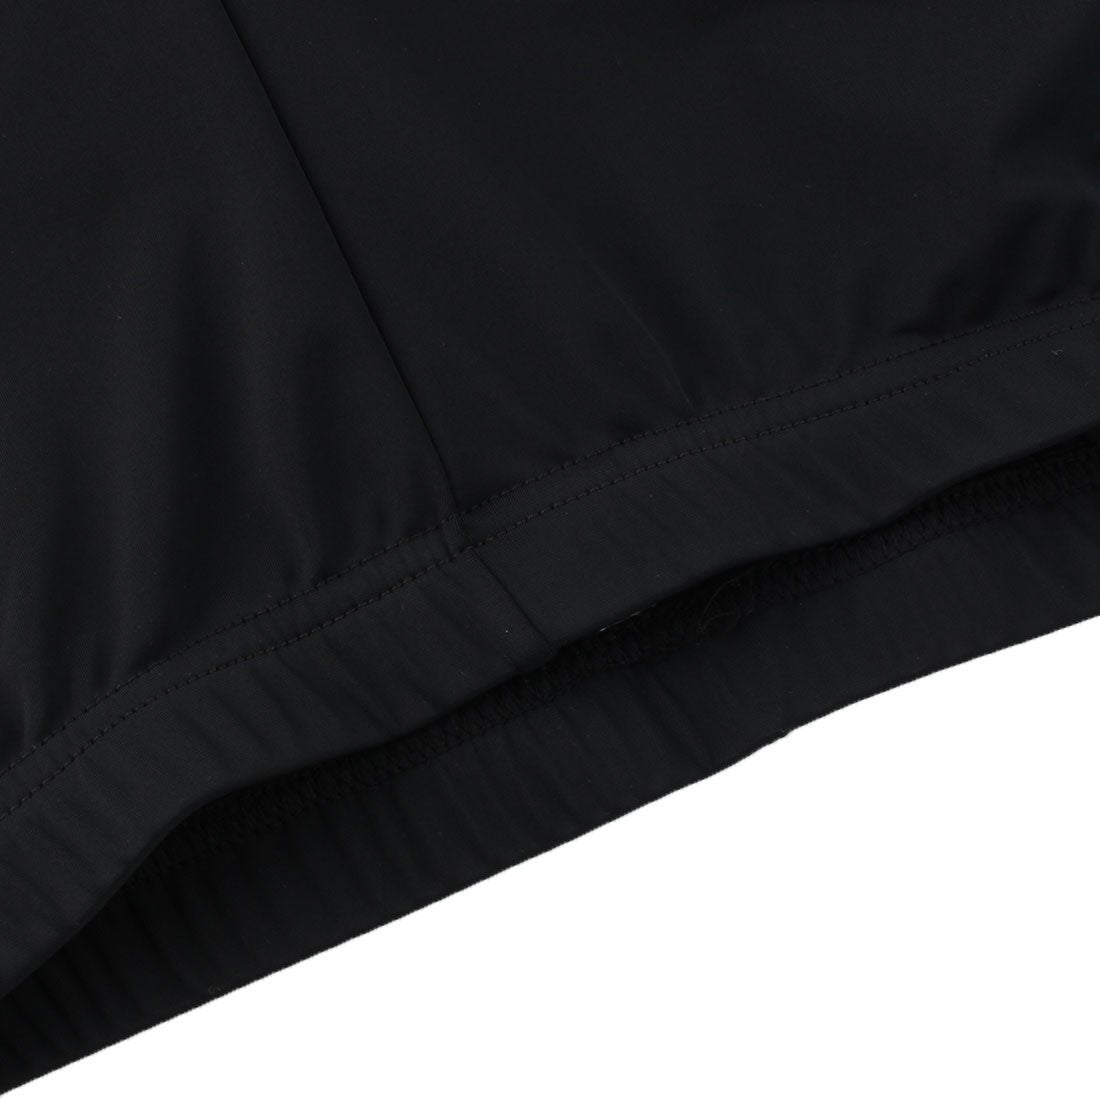 d827948a429 Shop REALTOO Authorized Bicycle Underwear Cycling Shorts Pants Black Blue M  (W 32) - Free Shipping On Orders Over  45 - Overstock.com - 18467173